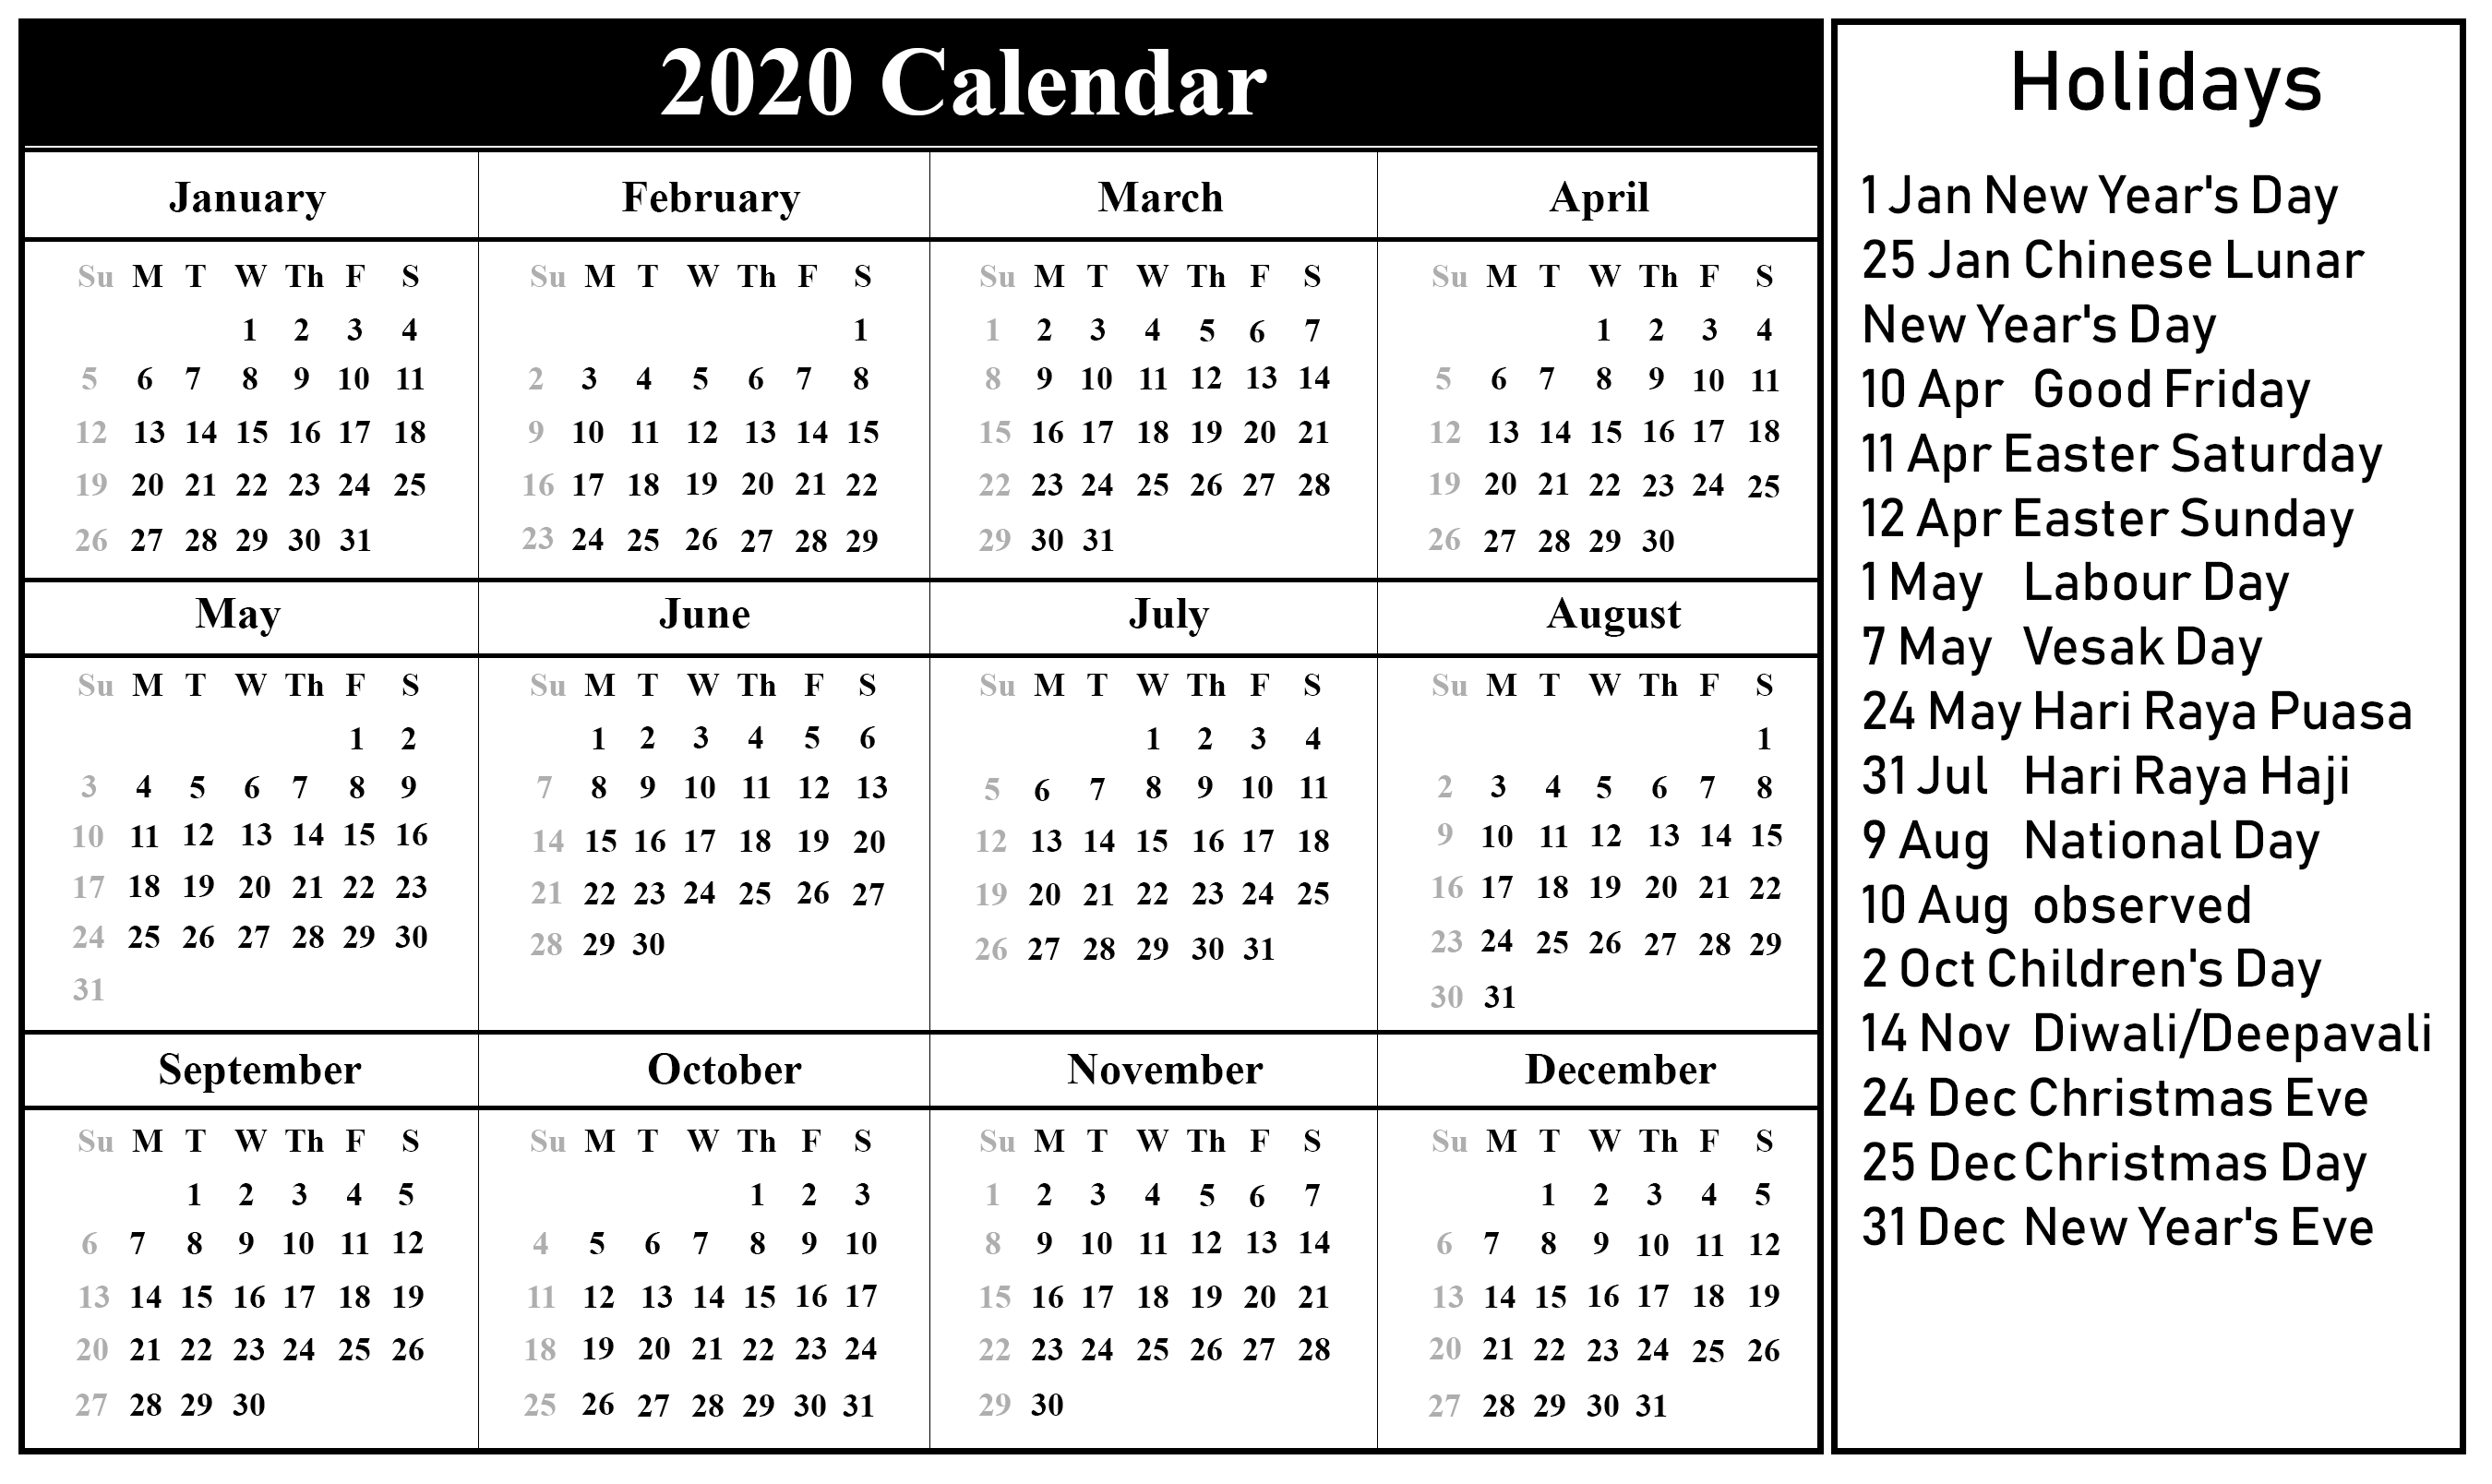 photo relating to Free Printable 2020 Calendar identified as No cost Printable Singapore 2020 Calendar With Holiday seasons Within just PDF